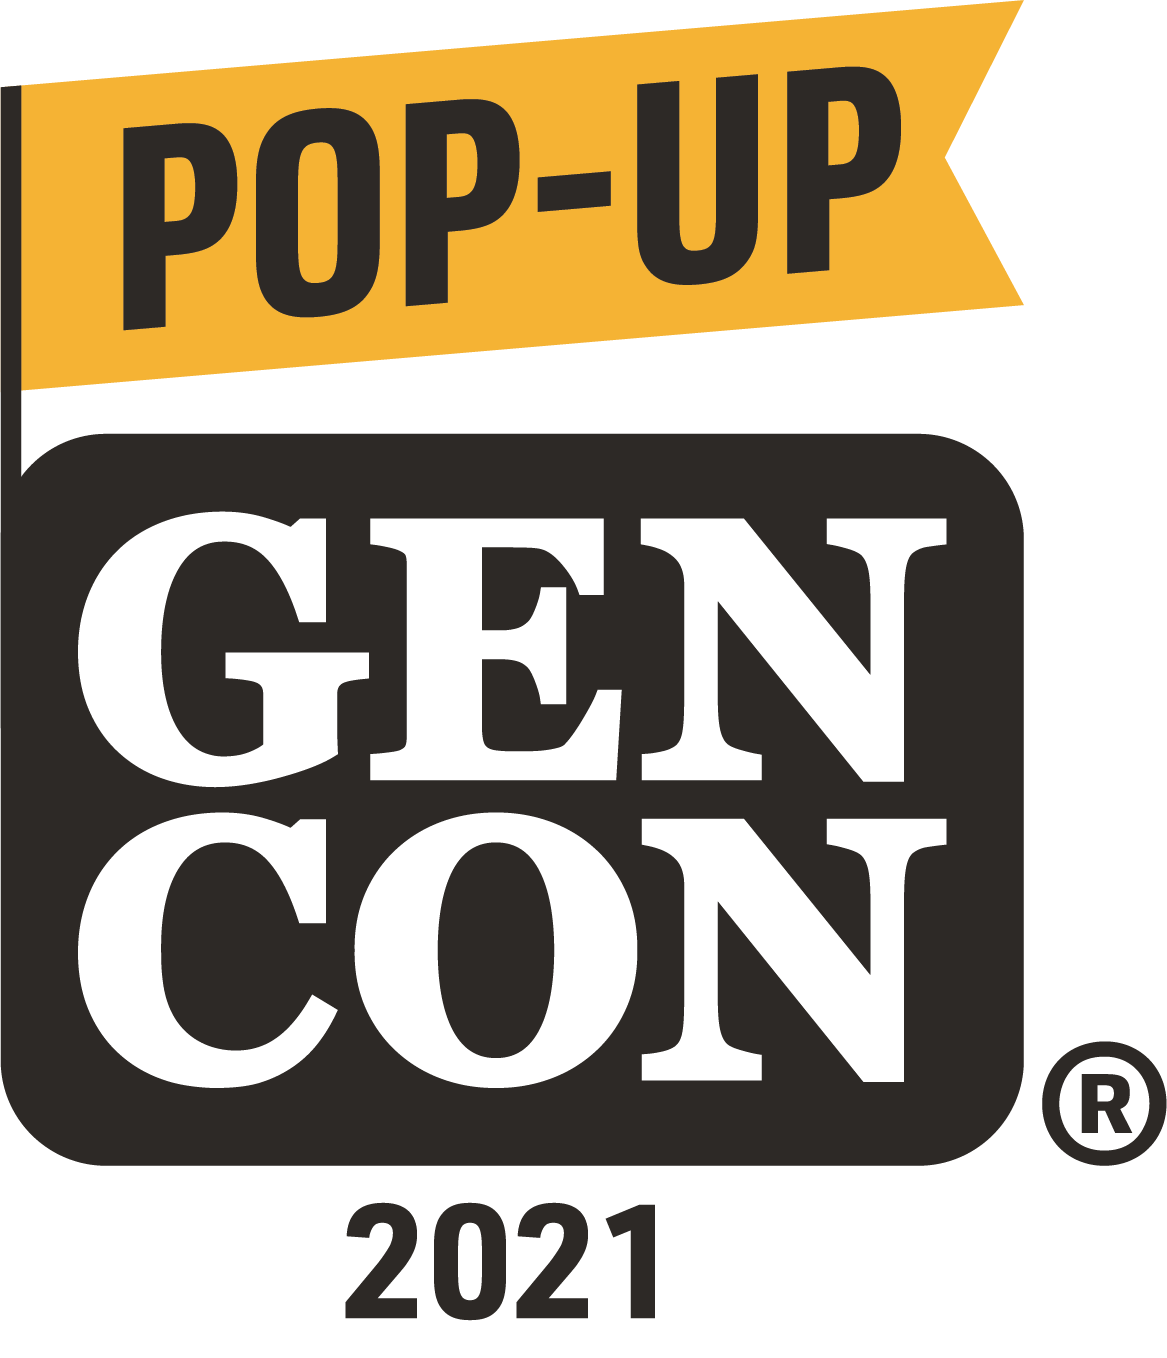 2021.popupgencon.logo.png